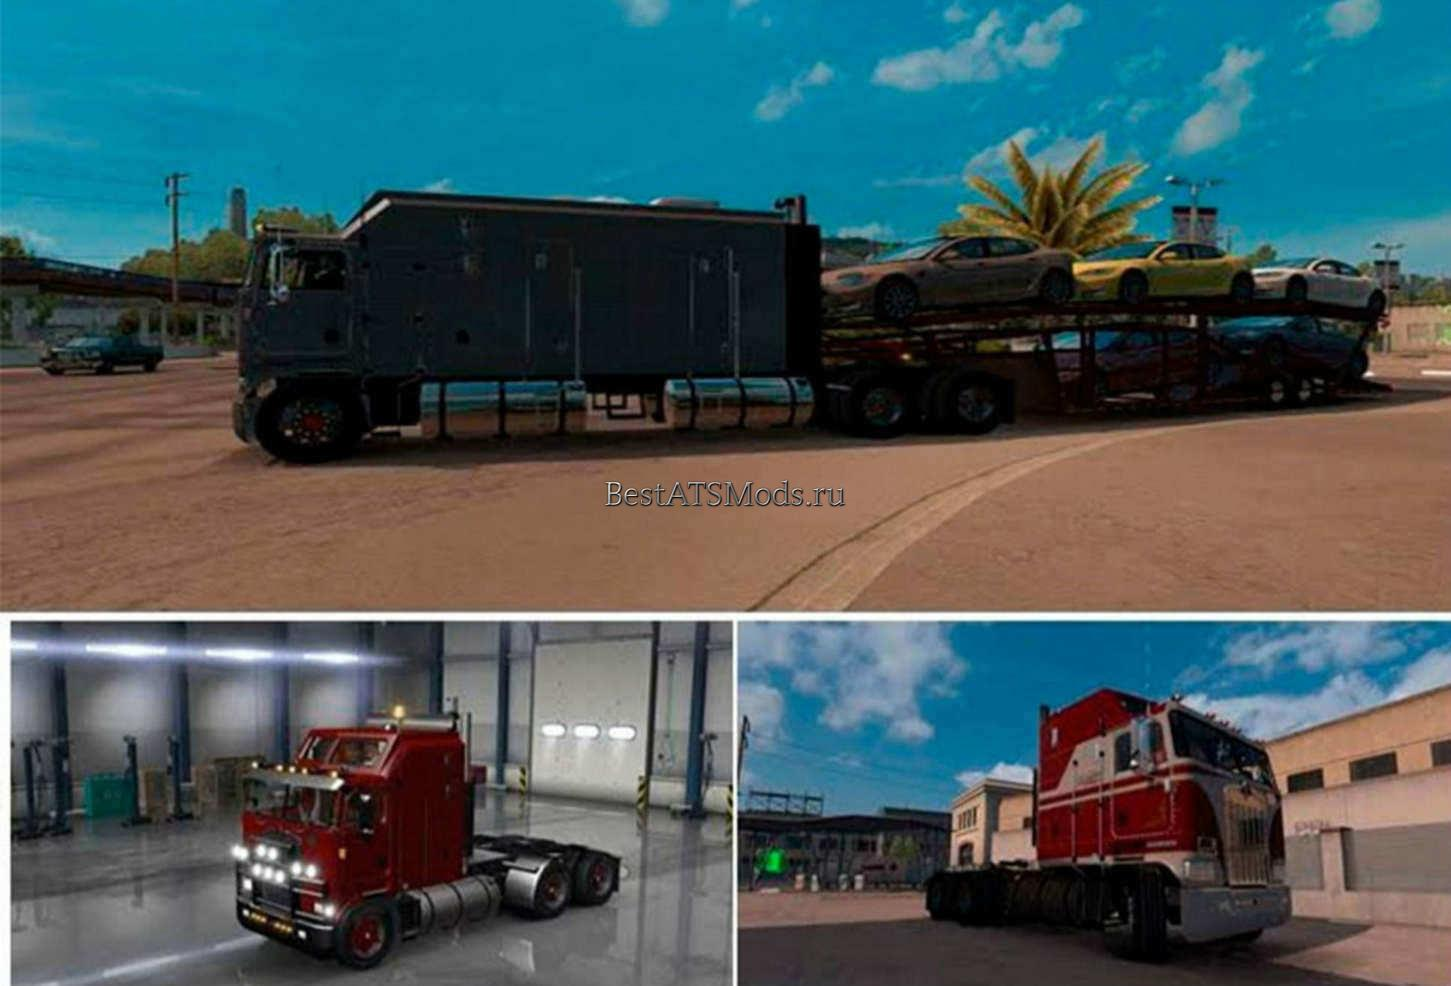 rsz_Мод_грузовик_kenworth_k100_truck_v3_edited_by_solaris36_american_truck_simulator